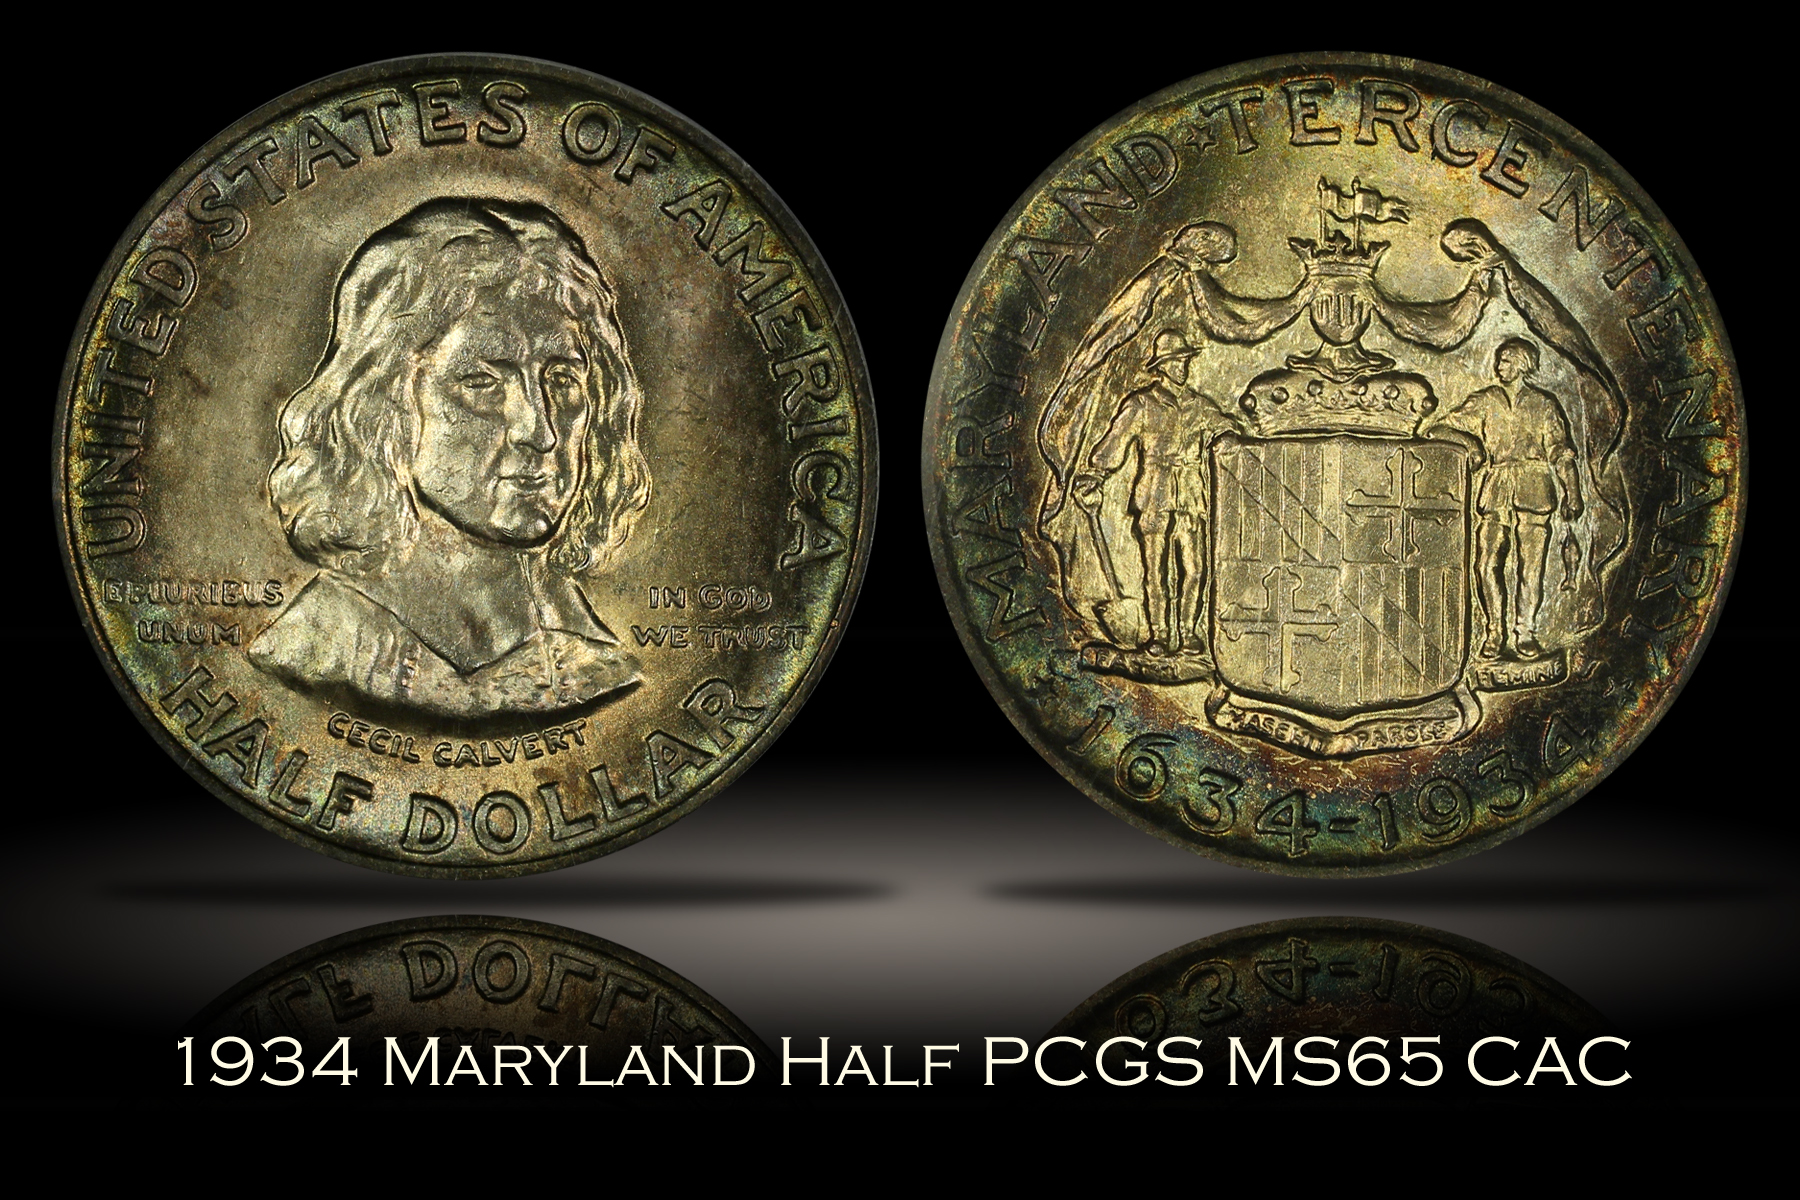 1934 Maryland Half PCGS MS65 CAC